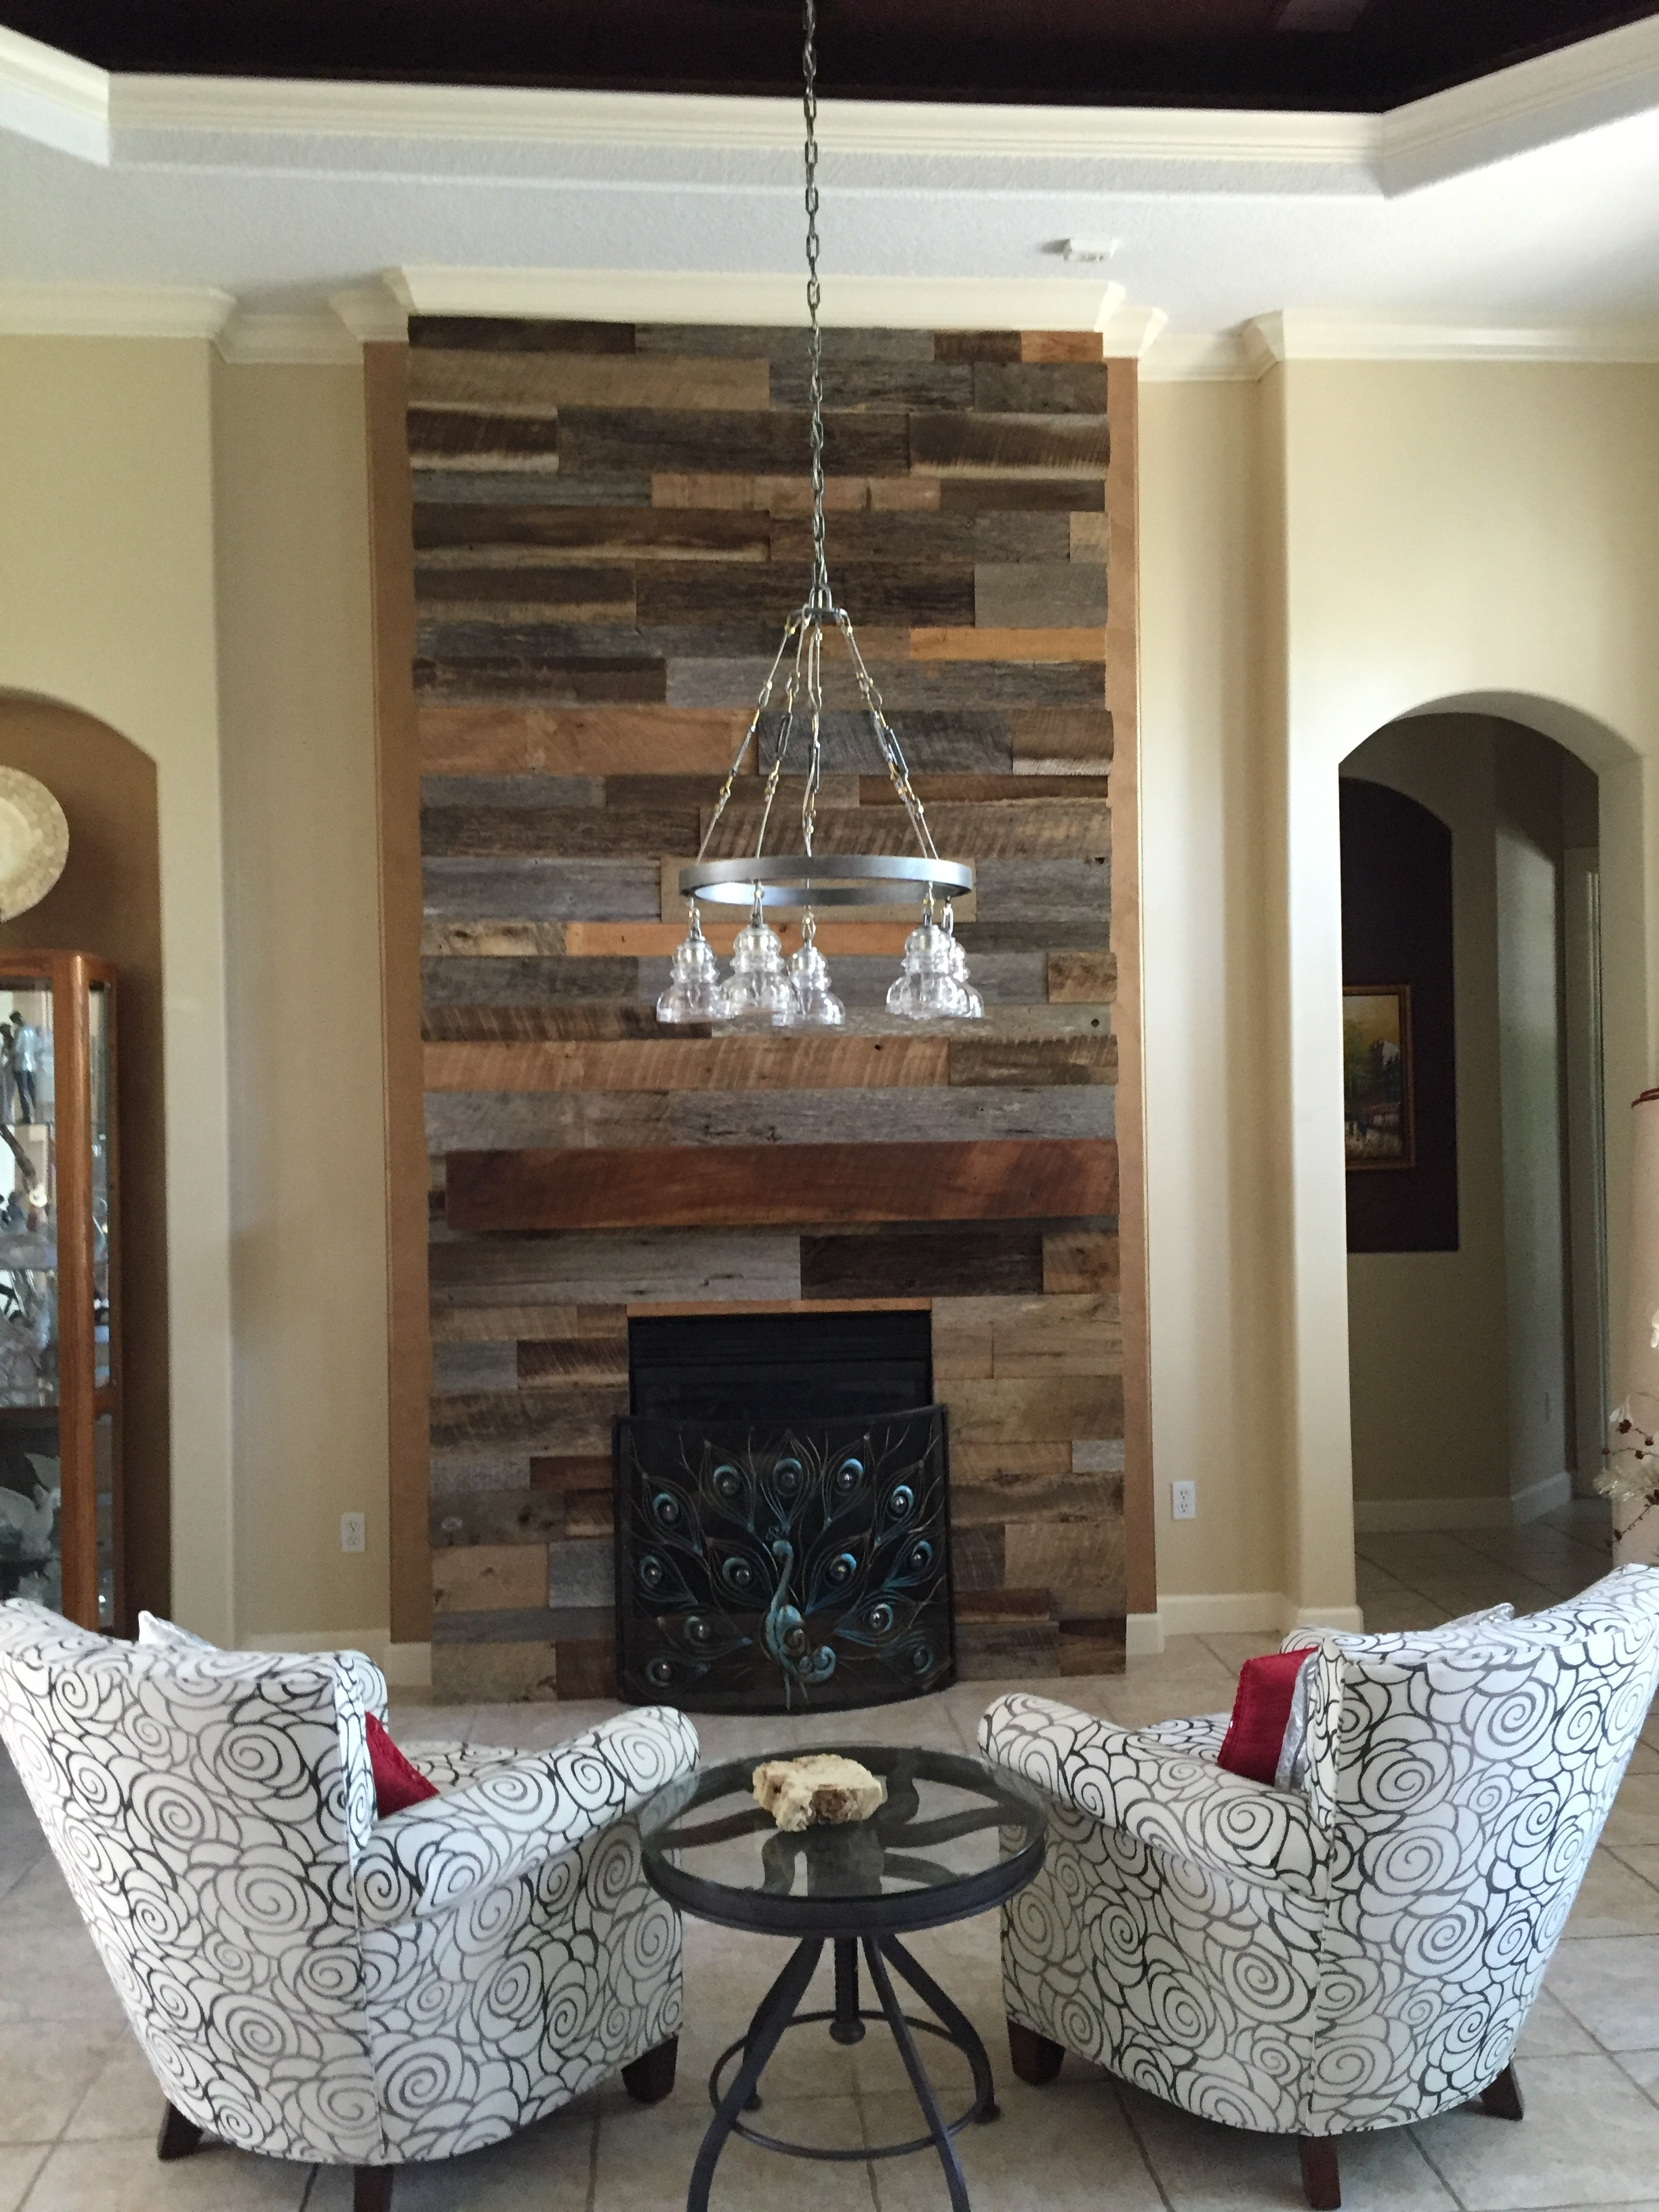 Wood Wall Accent Wood Accent Wall Fireplace Decor Throughout 2017 Reclaimed Wood Wall Accents (View 15 of 15)